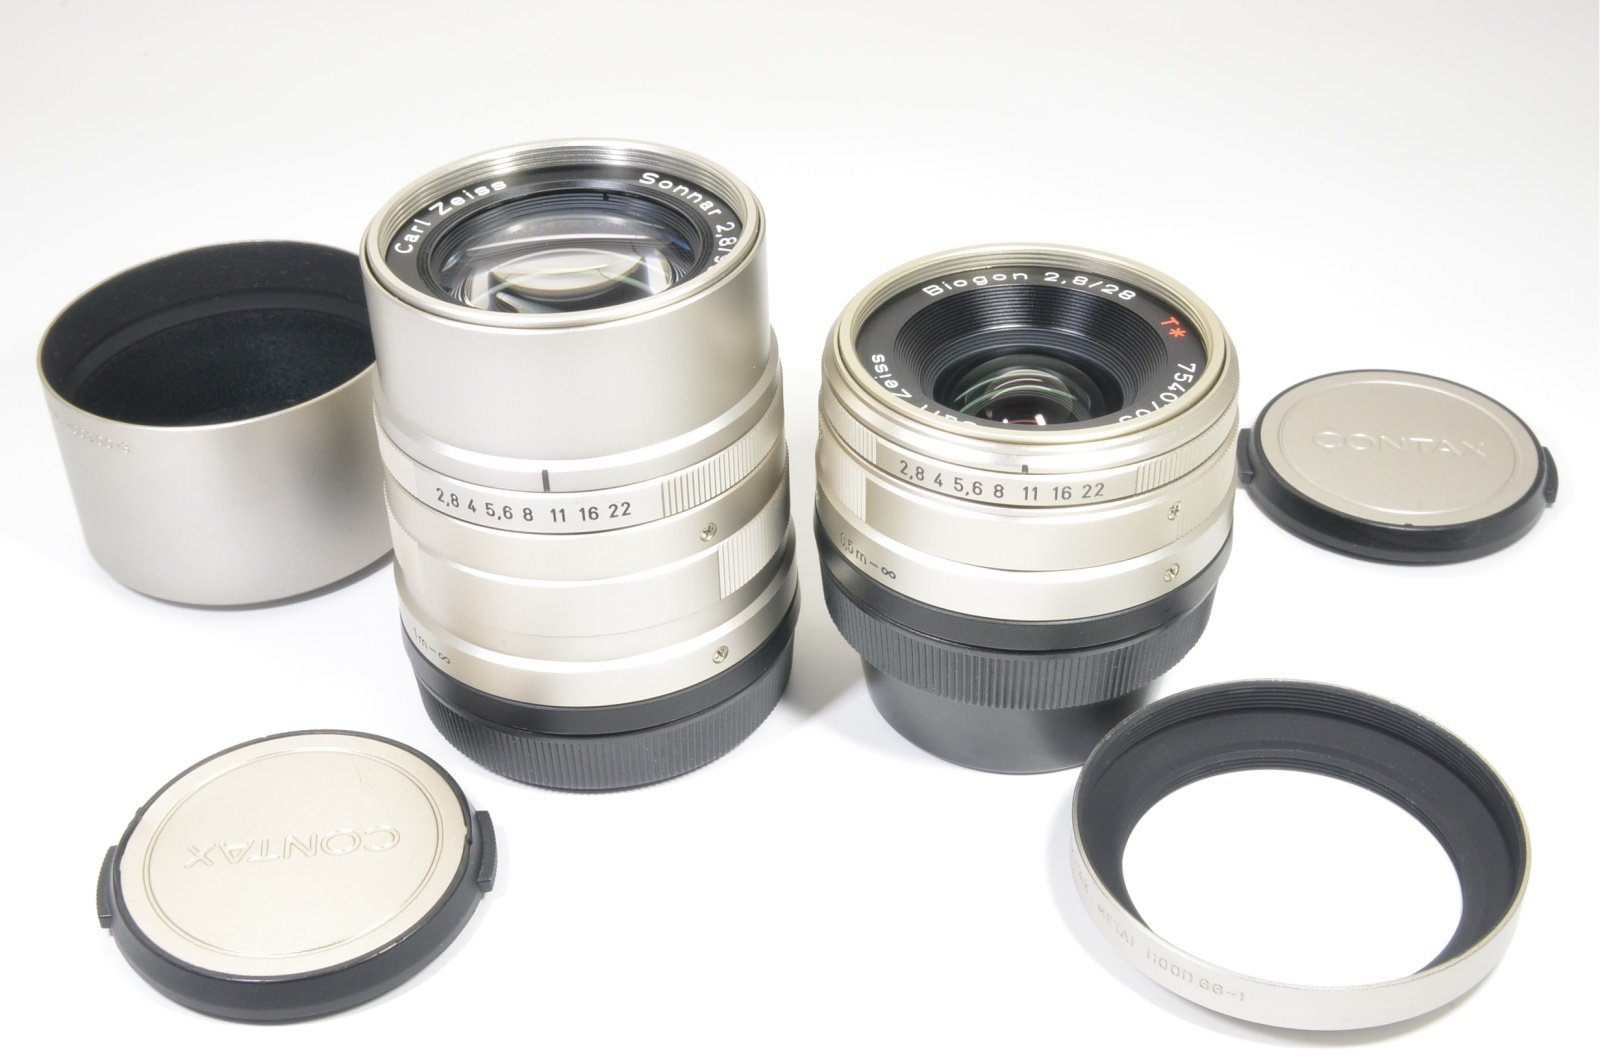 contax carl zeiss t* biogon 28mm f2.8 and sonnar 90mm f2.8 for g1, g2 from japan